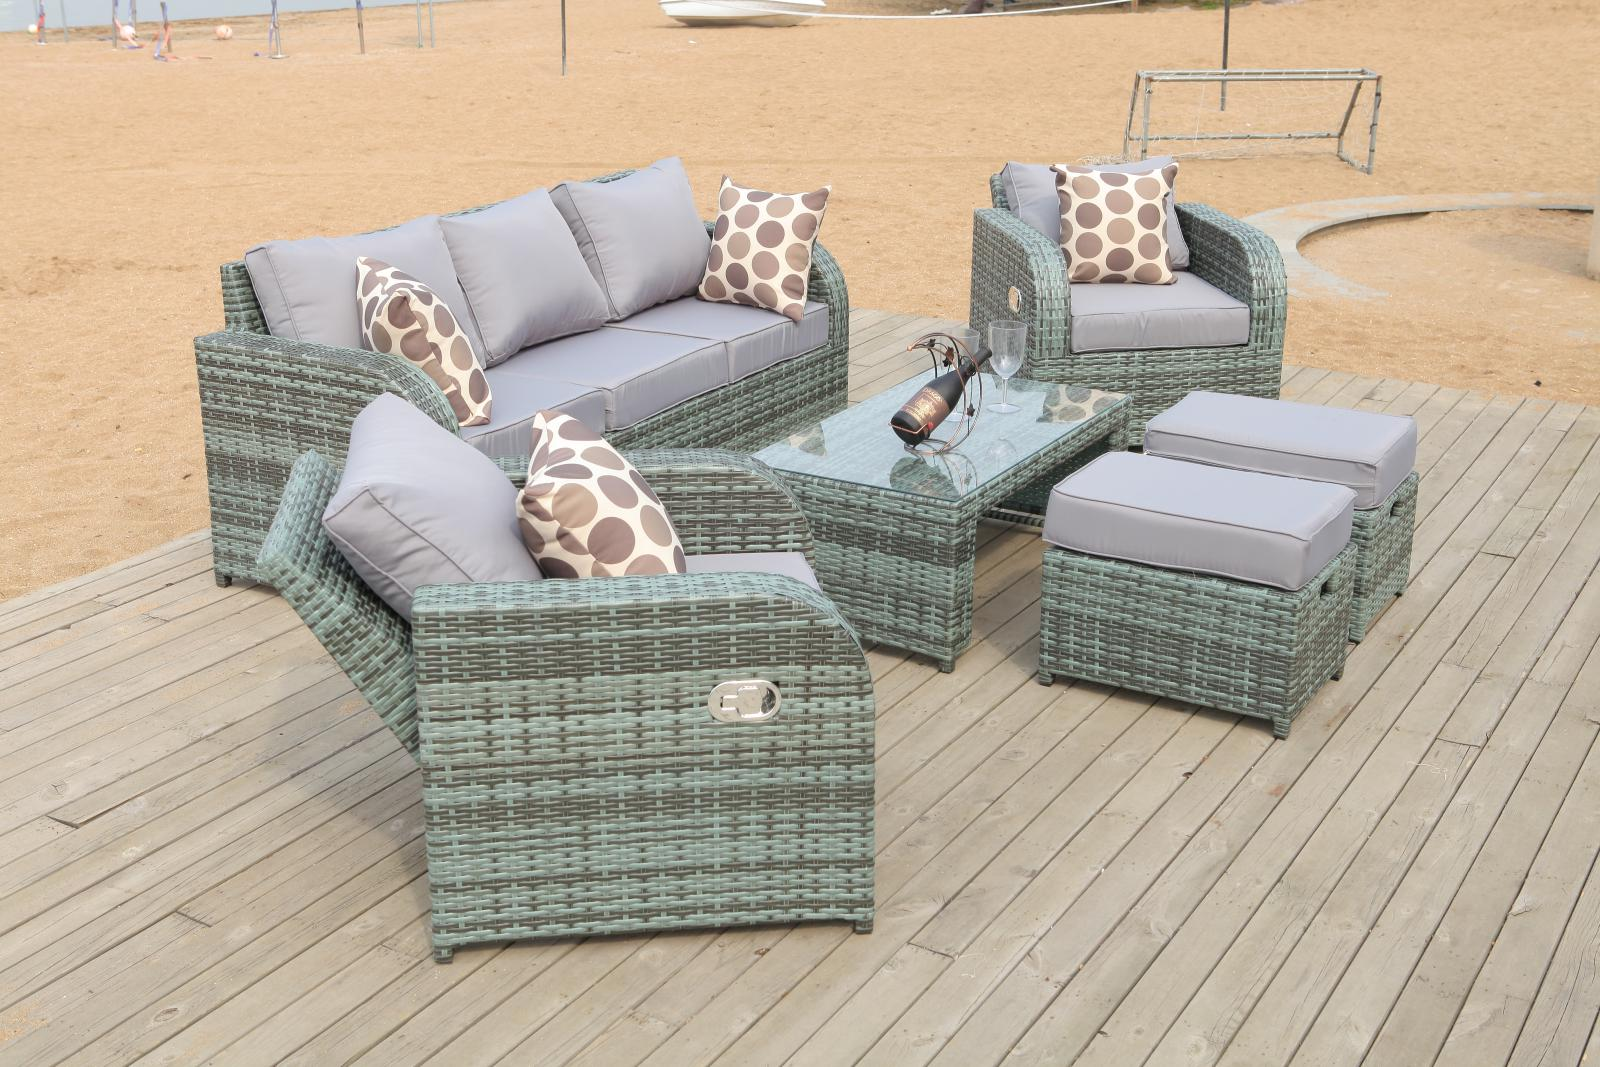 outdoor recliner chairs uk wooden rocking white grey rattan garden furniture set sofa reclining